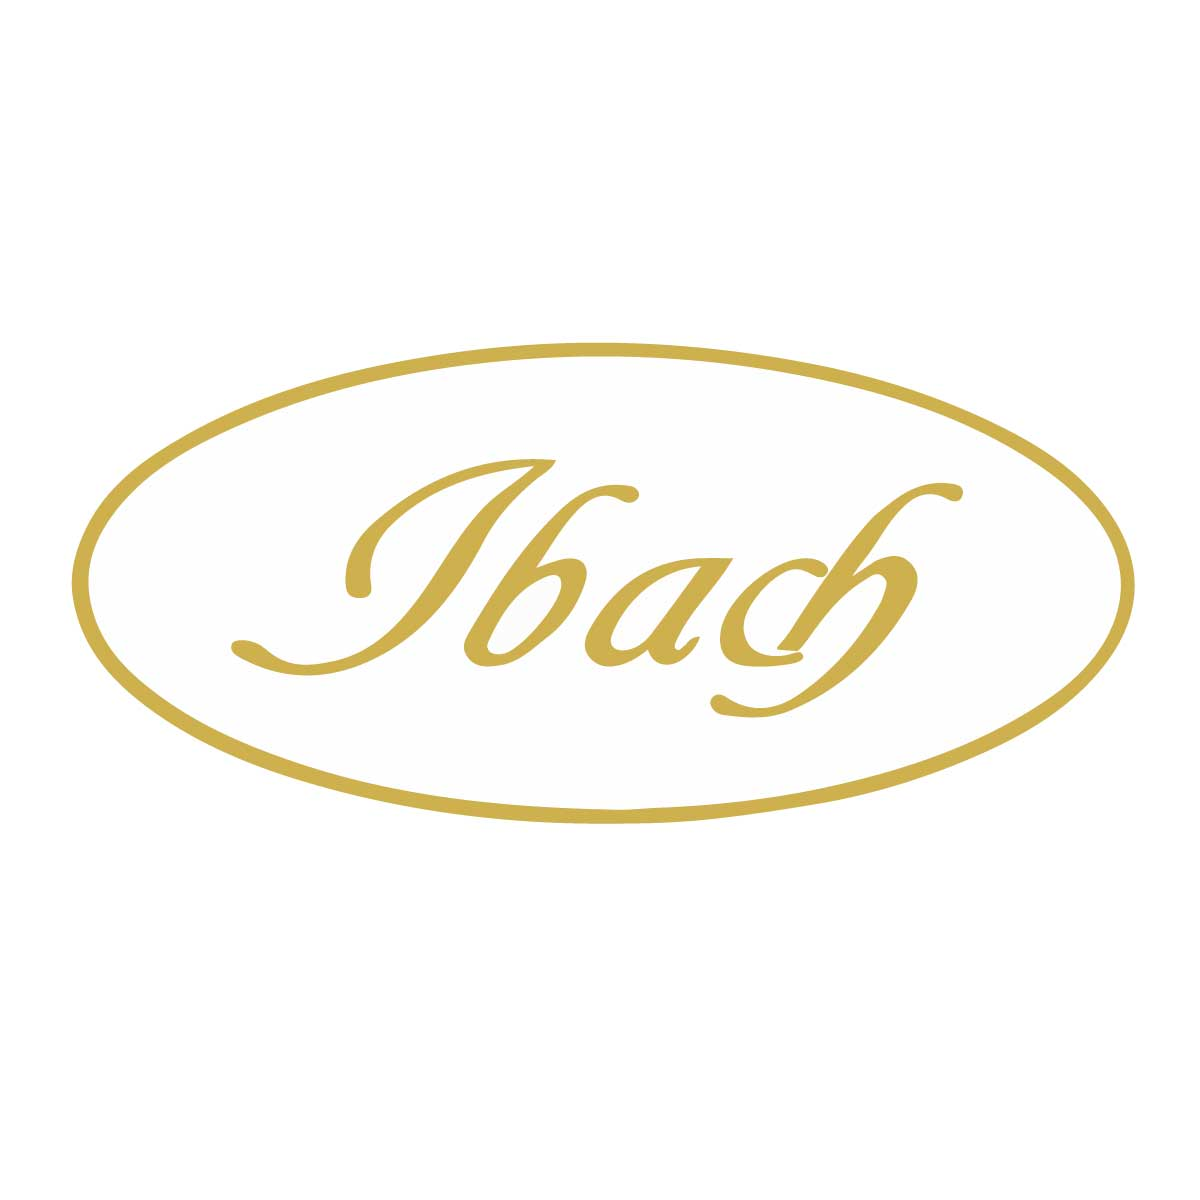 Ibach 160 Image